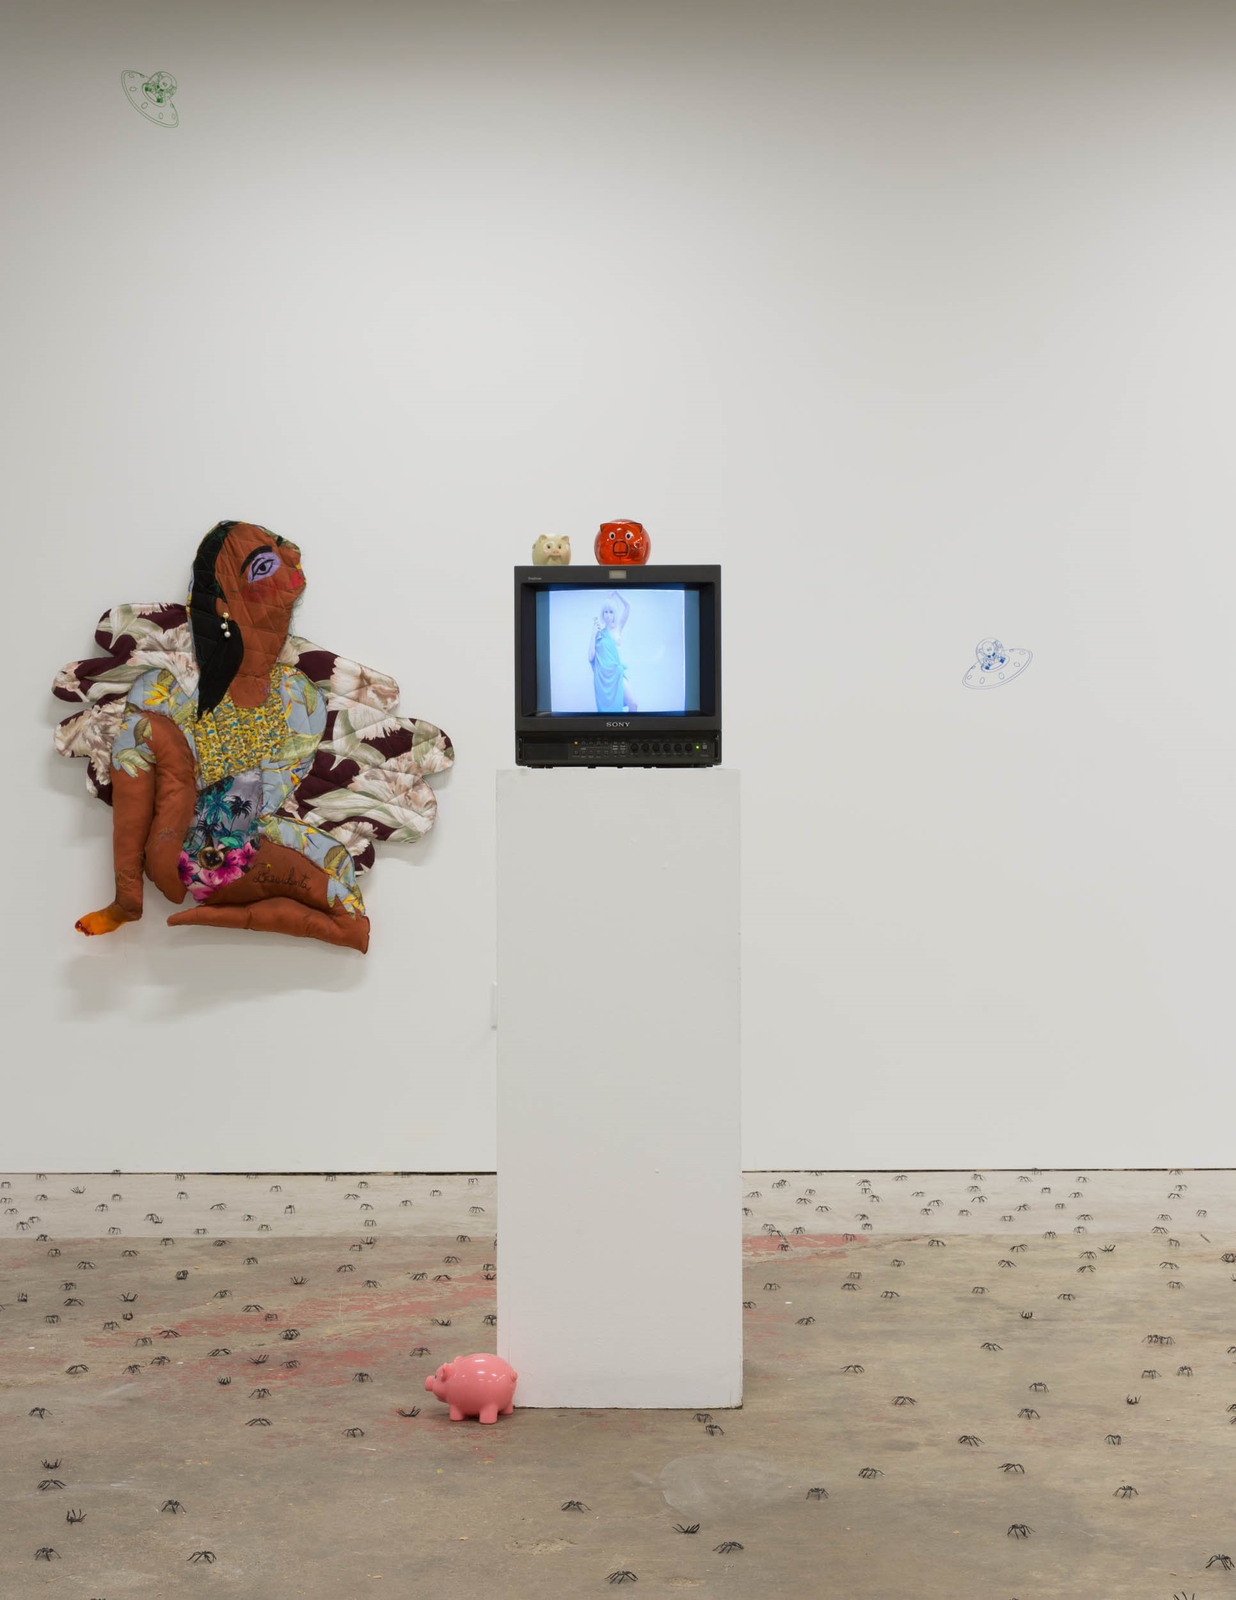 Installation shot: Mallrats, Et al, etc. with 100% Gallery, Minnesota Street Project, San Francisco, CA, August 27 – September 24, 2016. Image courtesy of 100% Gallery.